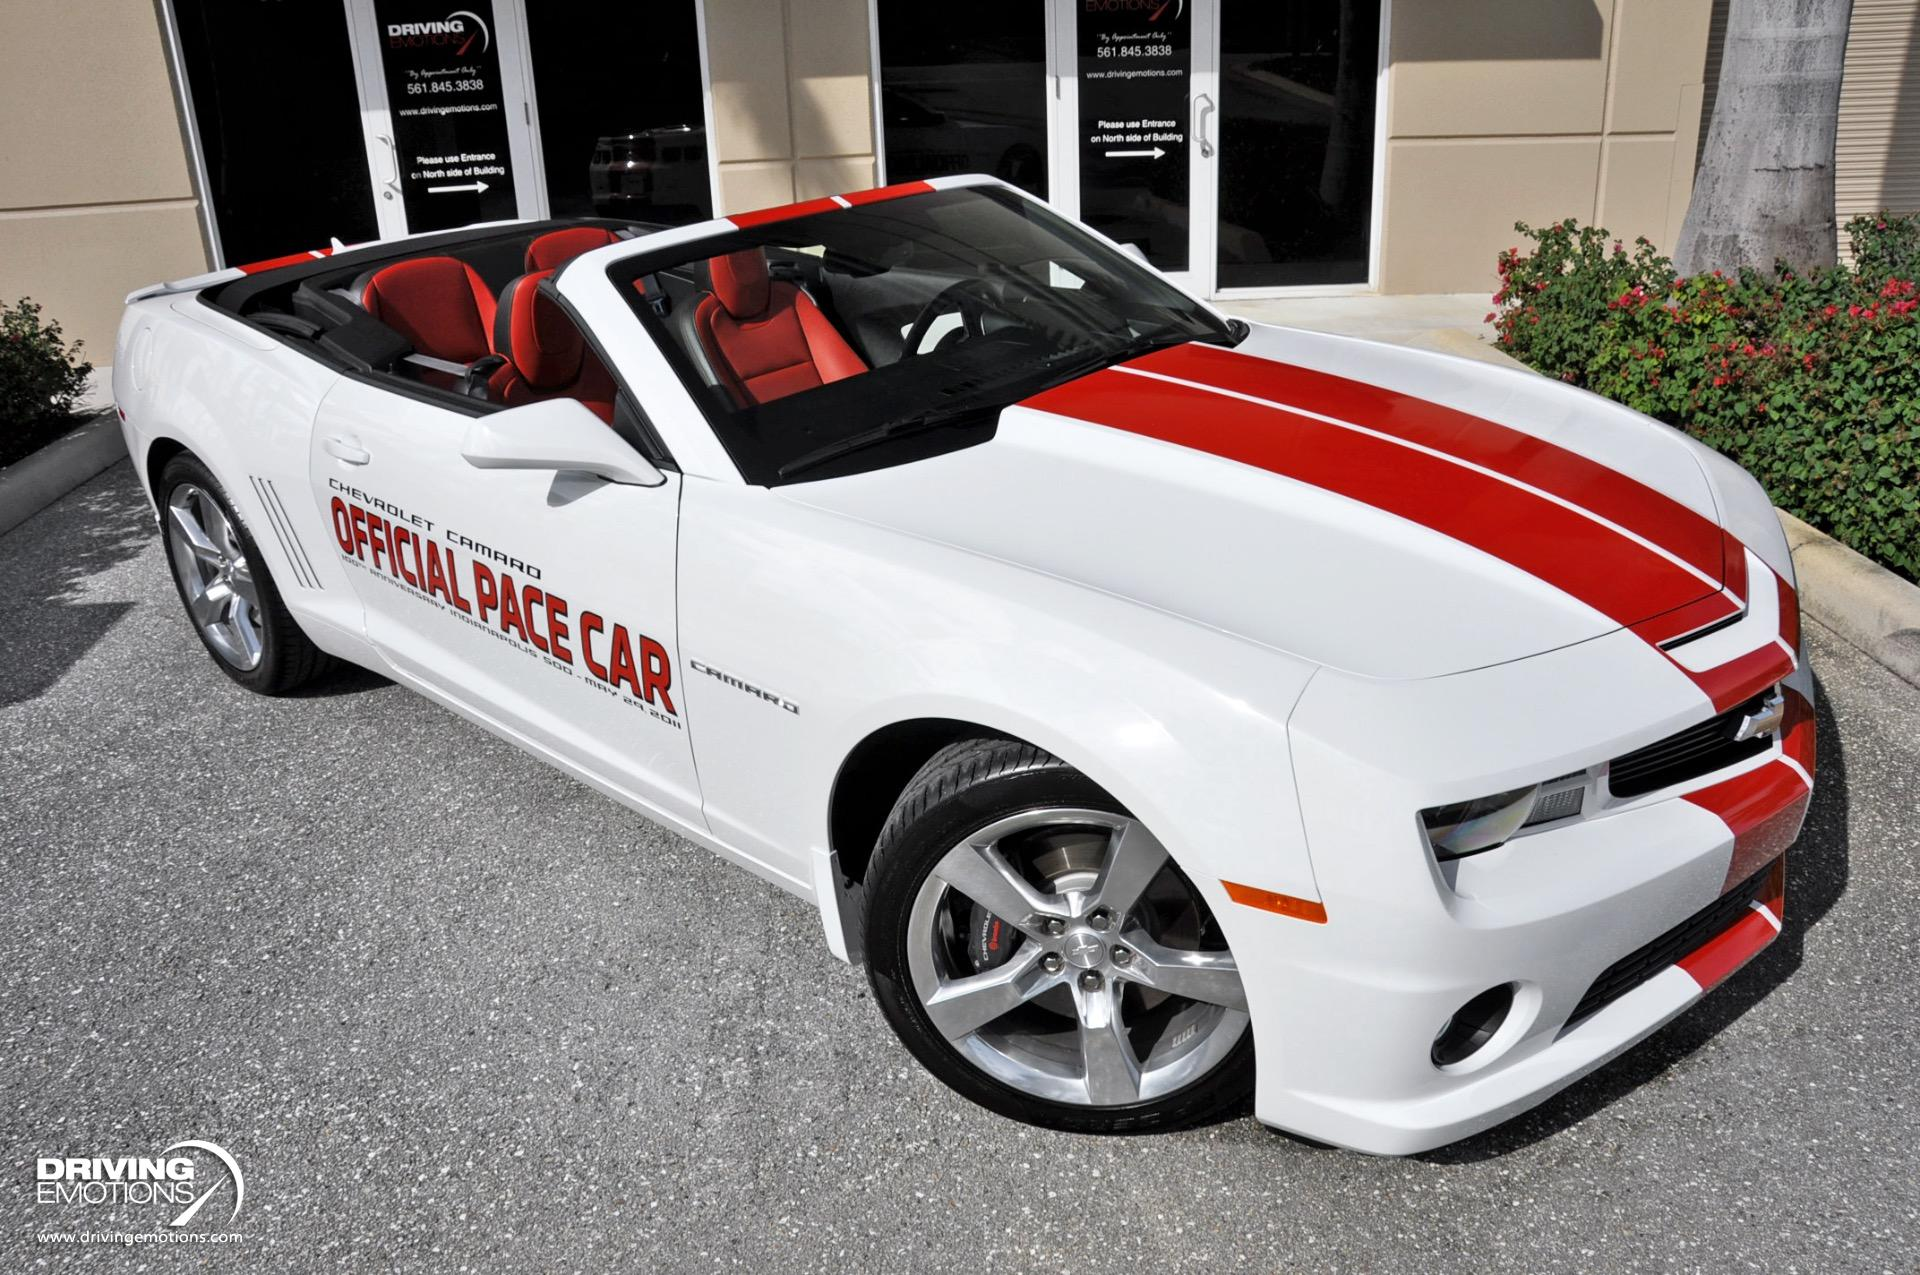 Used 2011 Chevrolet Camaro 2SS Convertible Indianapolis 500 Pace Car Replica 2SS Convertible Indy 500 Pace Car Replica | Lake Park, FL